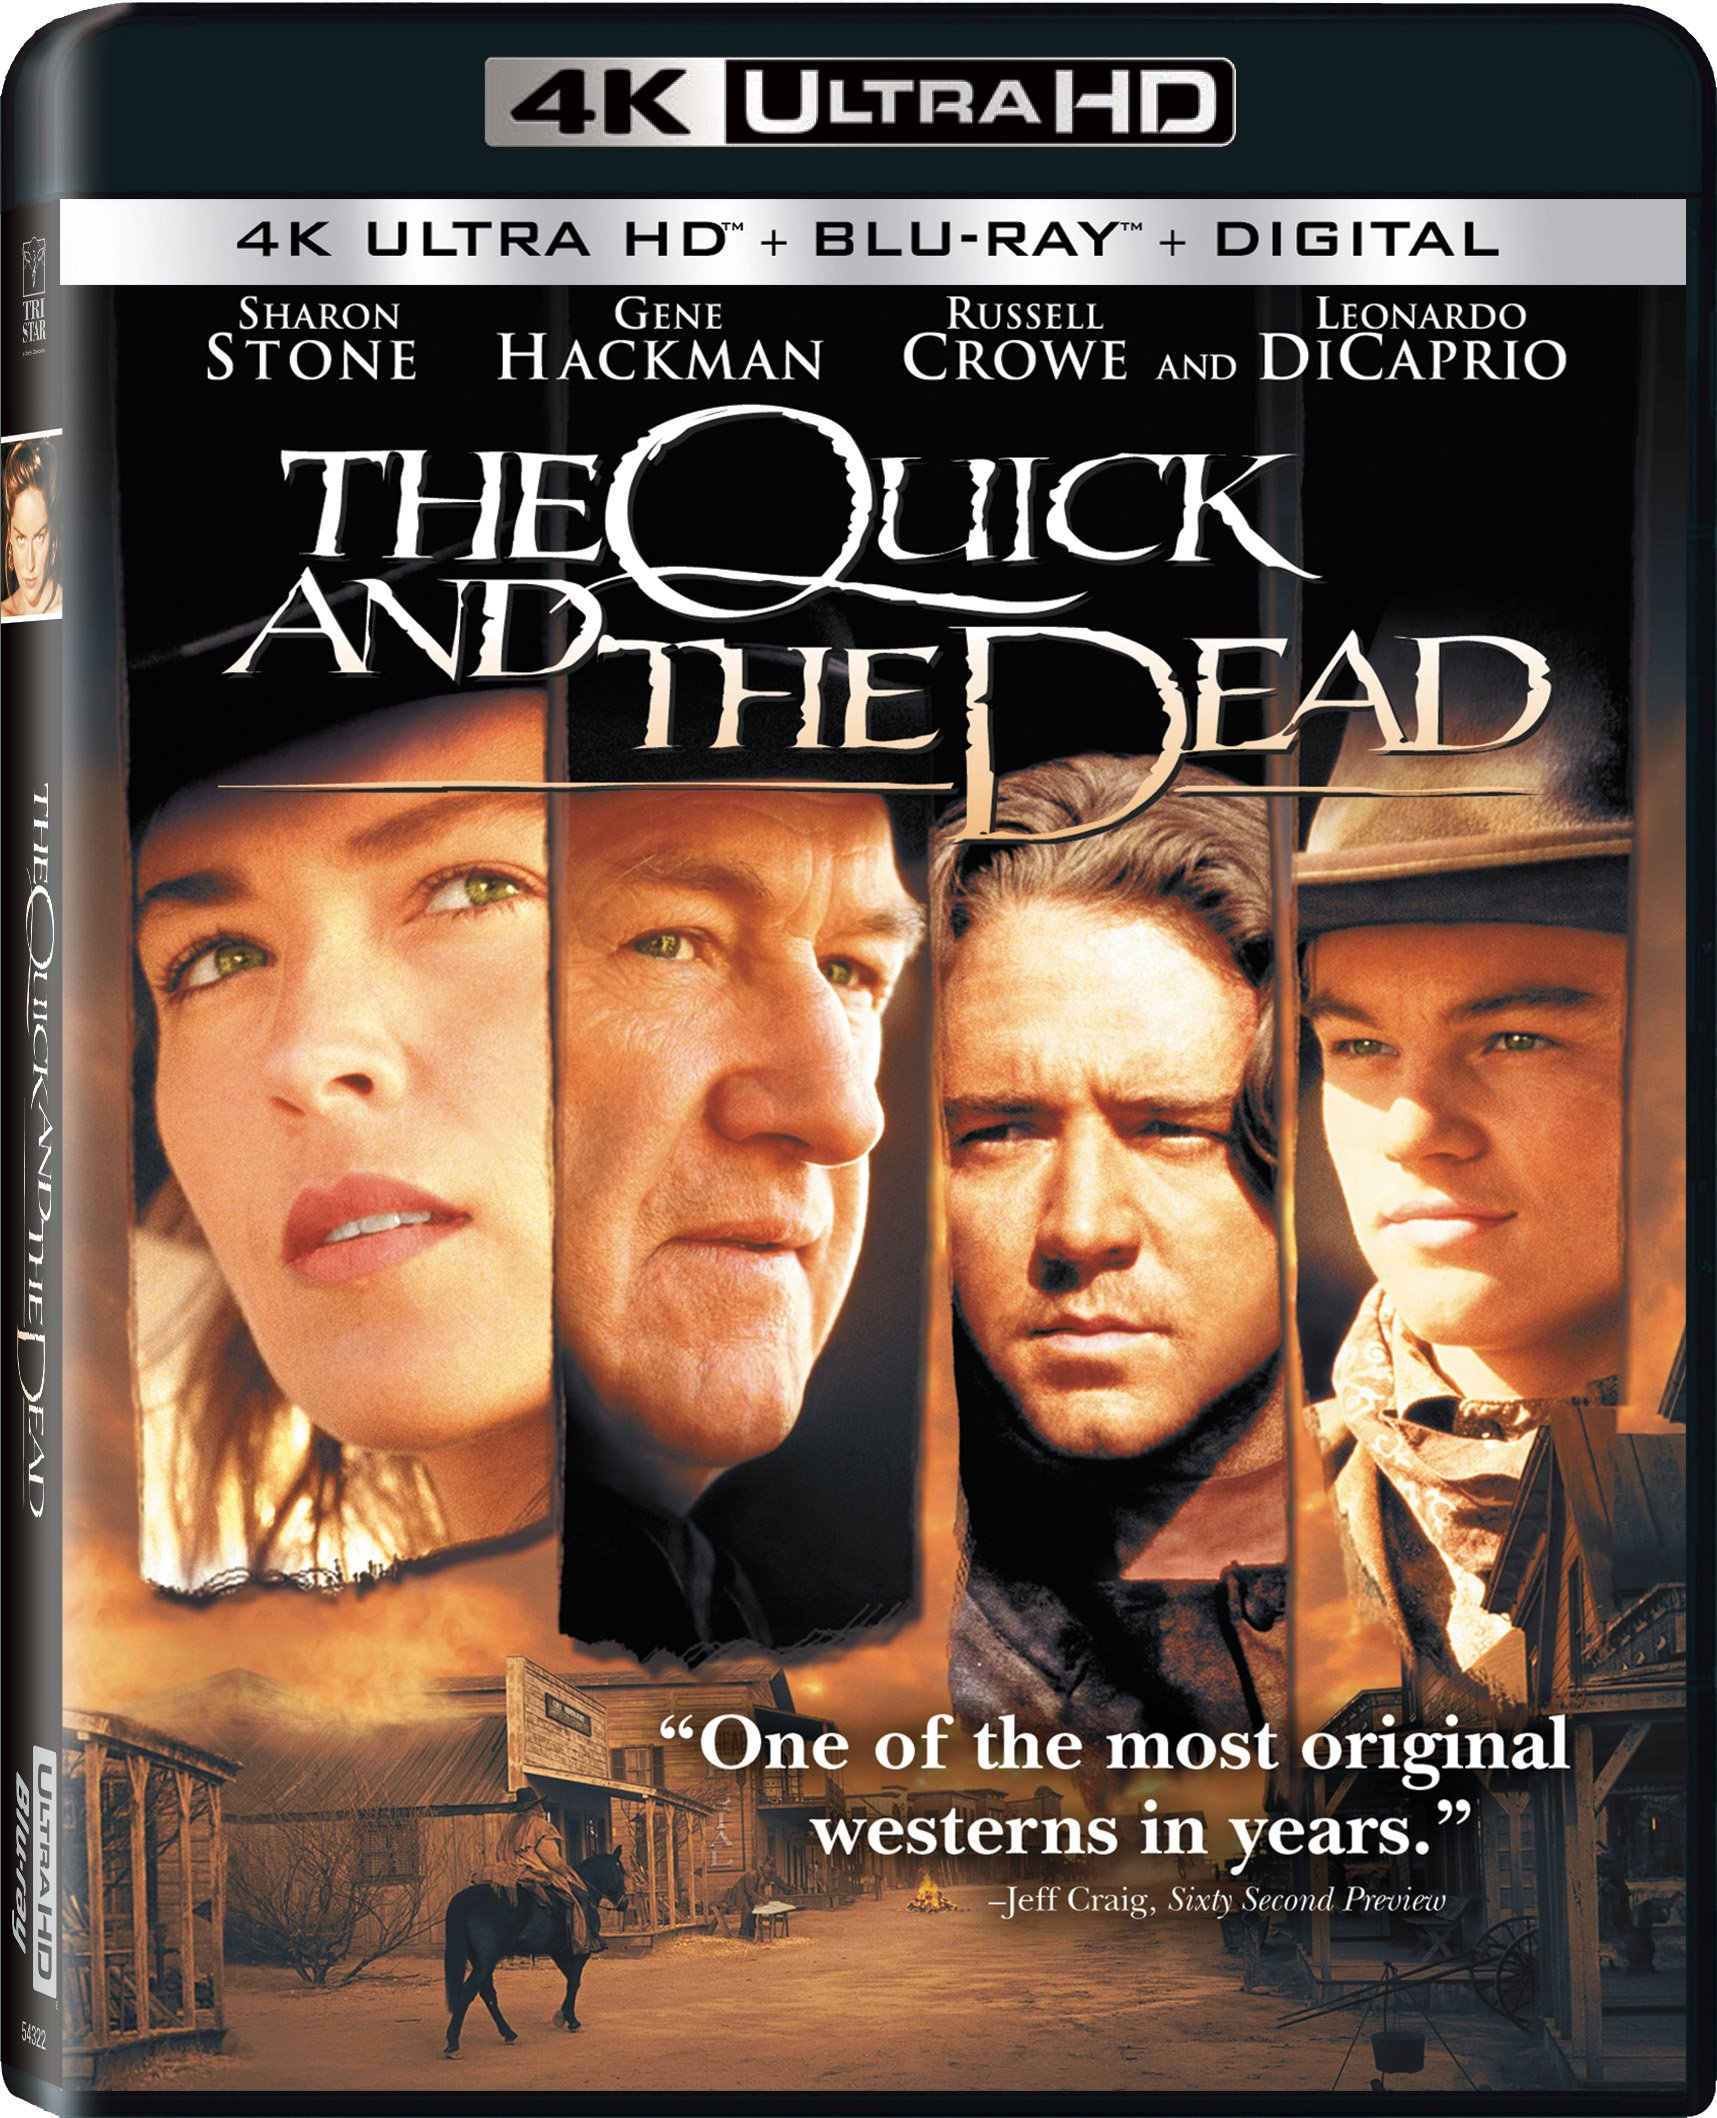 Blu-ray : The Quick And The Dead (With Blu-Ray, 4K Mastering, 2 Pack, Digital Copy, Widescreen)